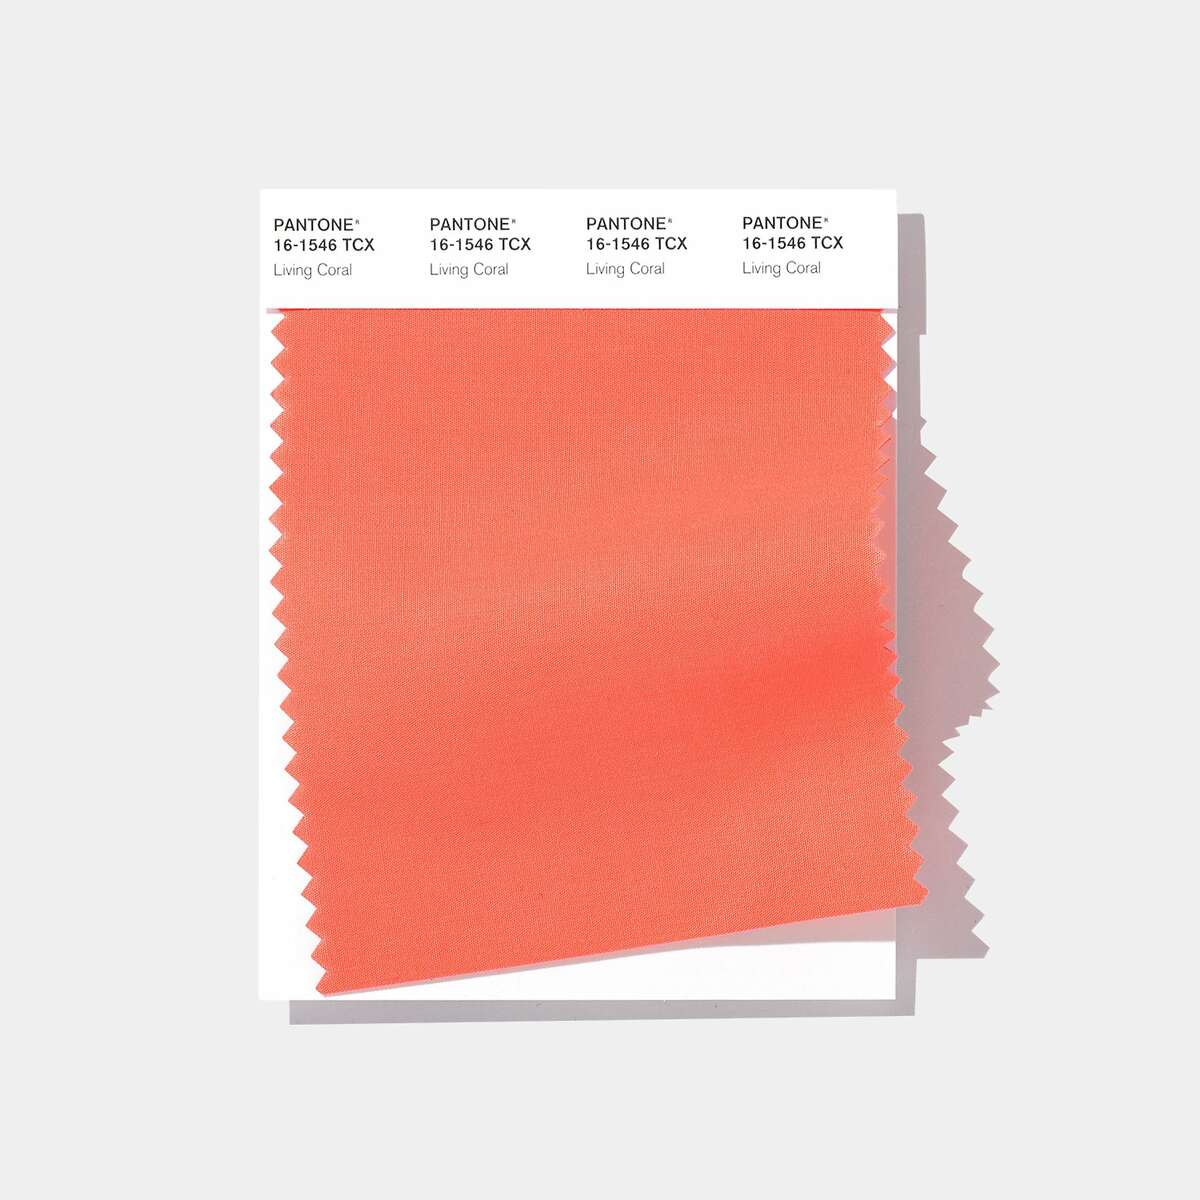 2019: Living Coral The Pantone color of the year is Living Coral. (Pantone)